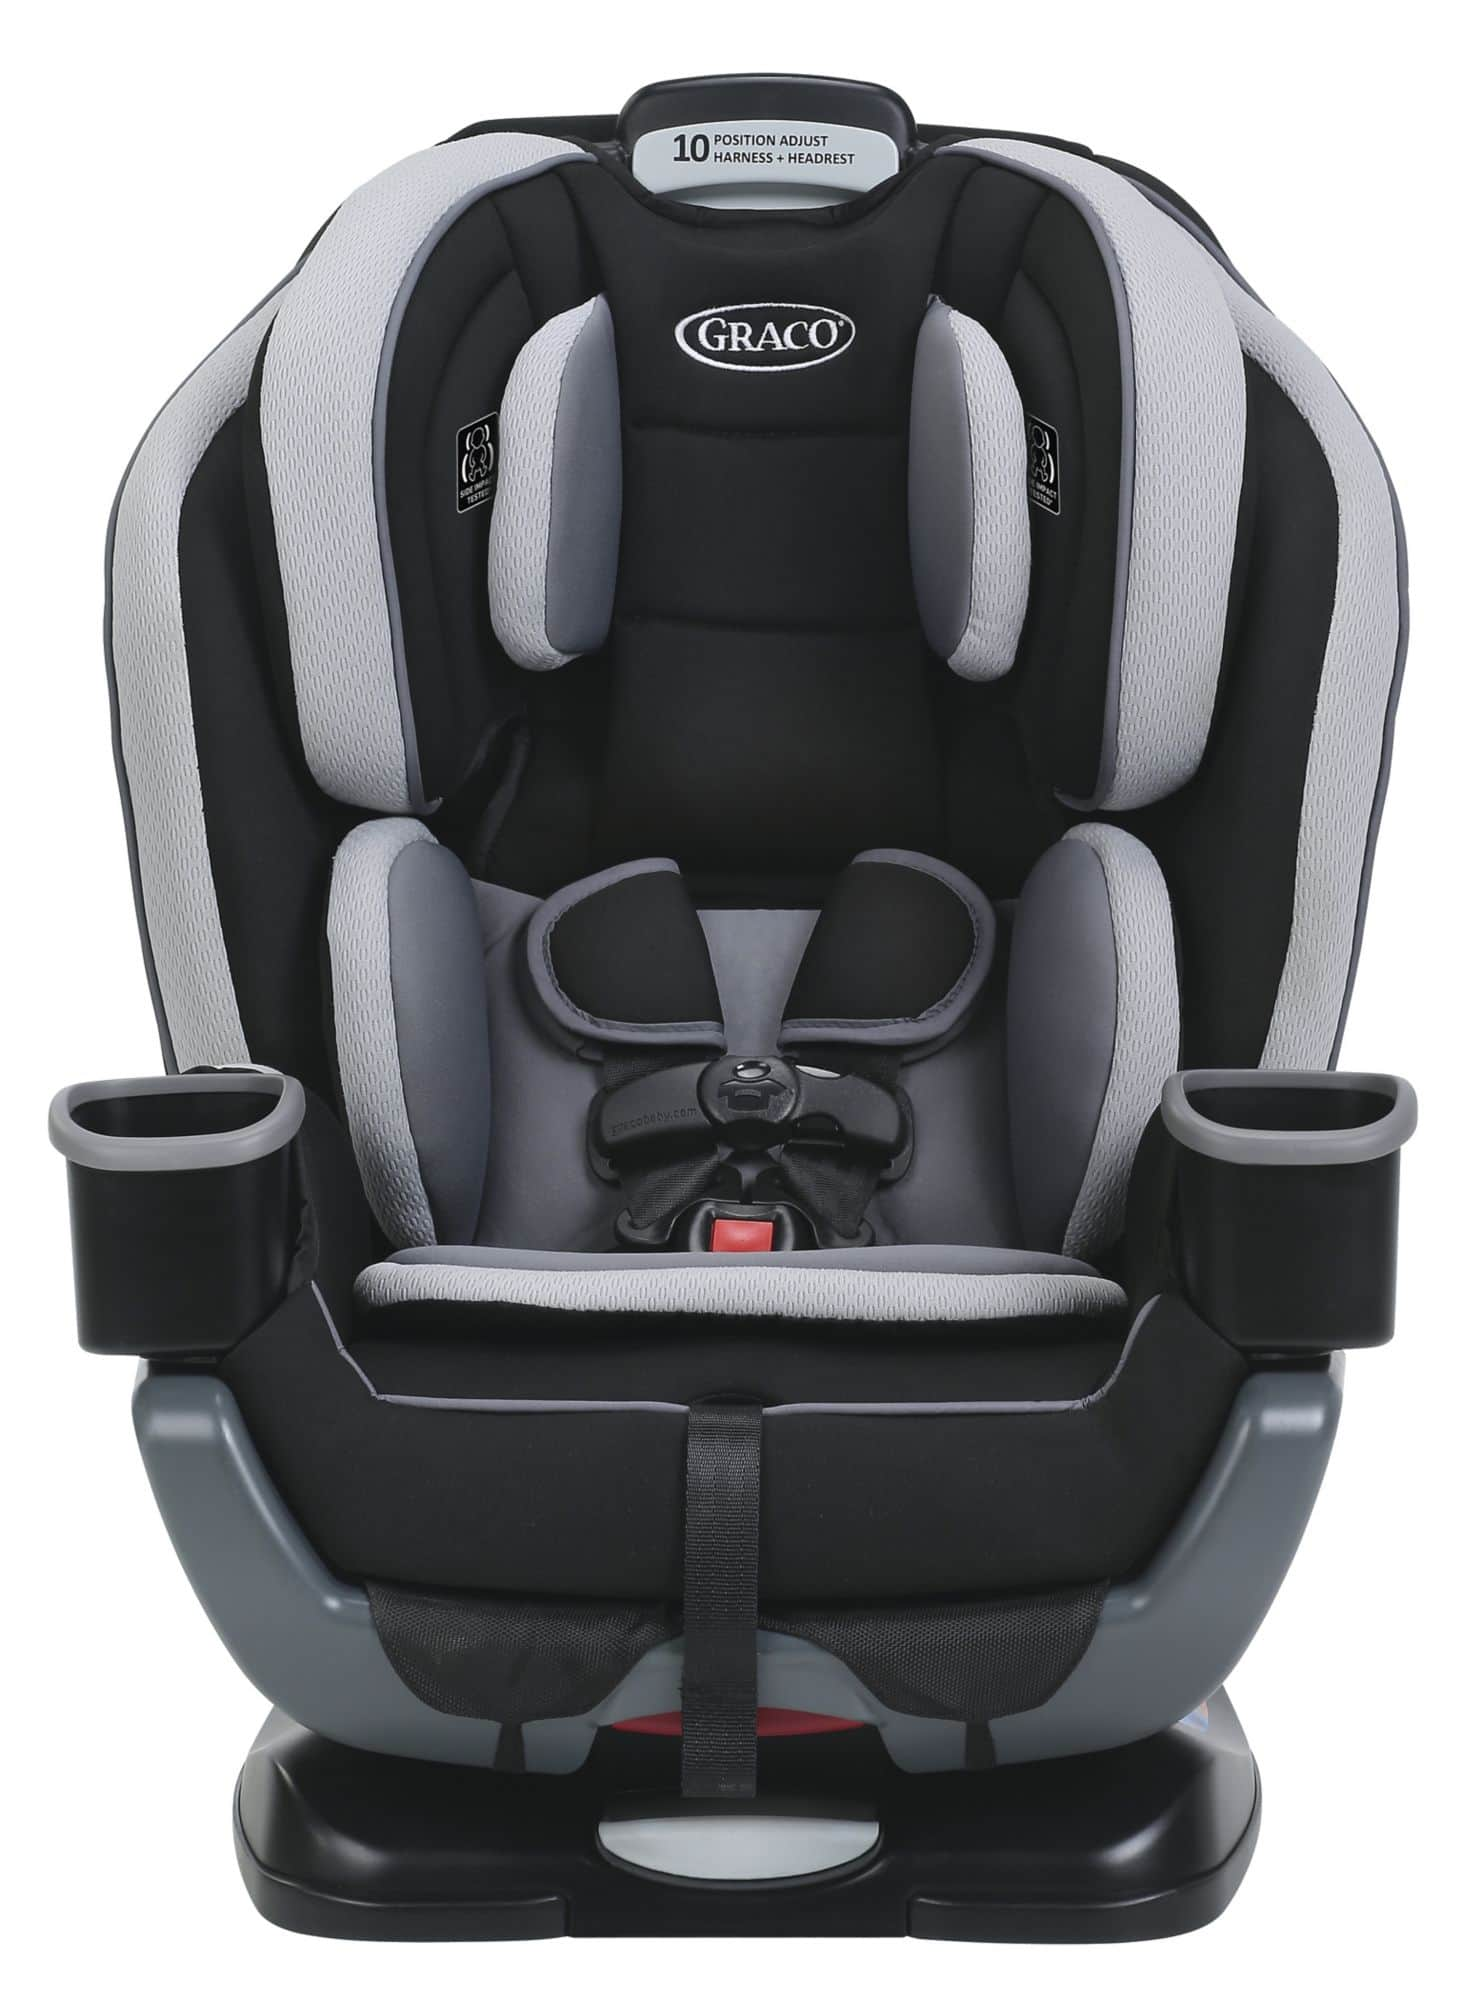 Graco Extend2Fit 3-in-1 Convertible Car Seat $145.99